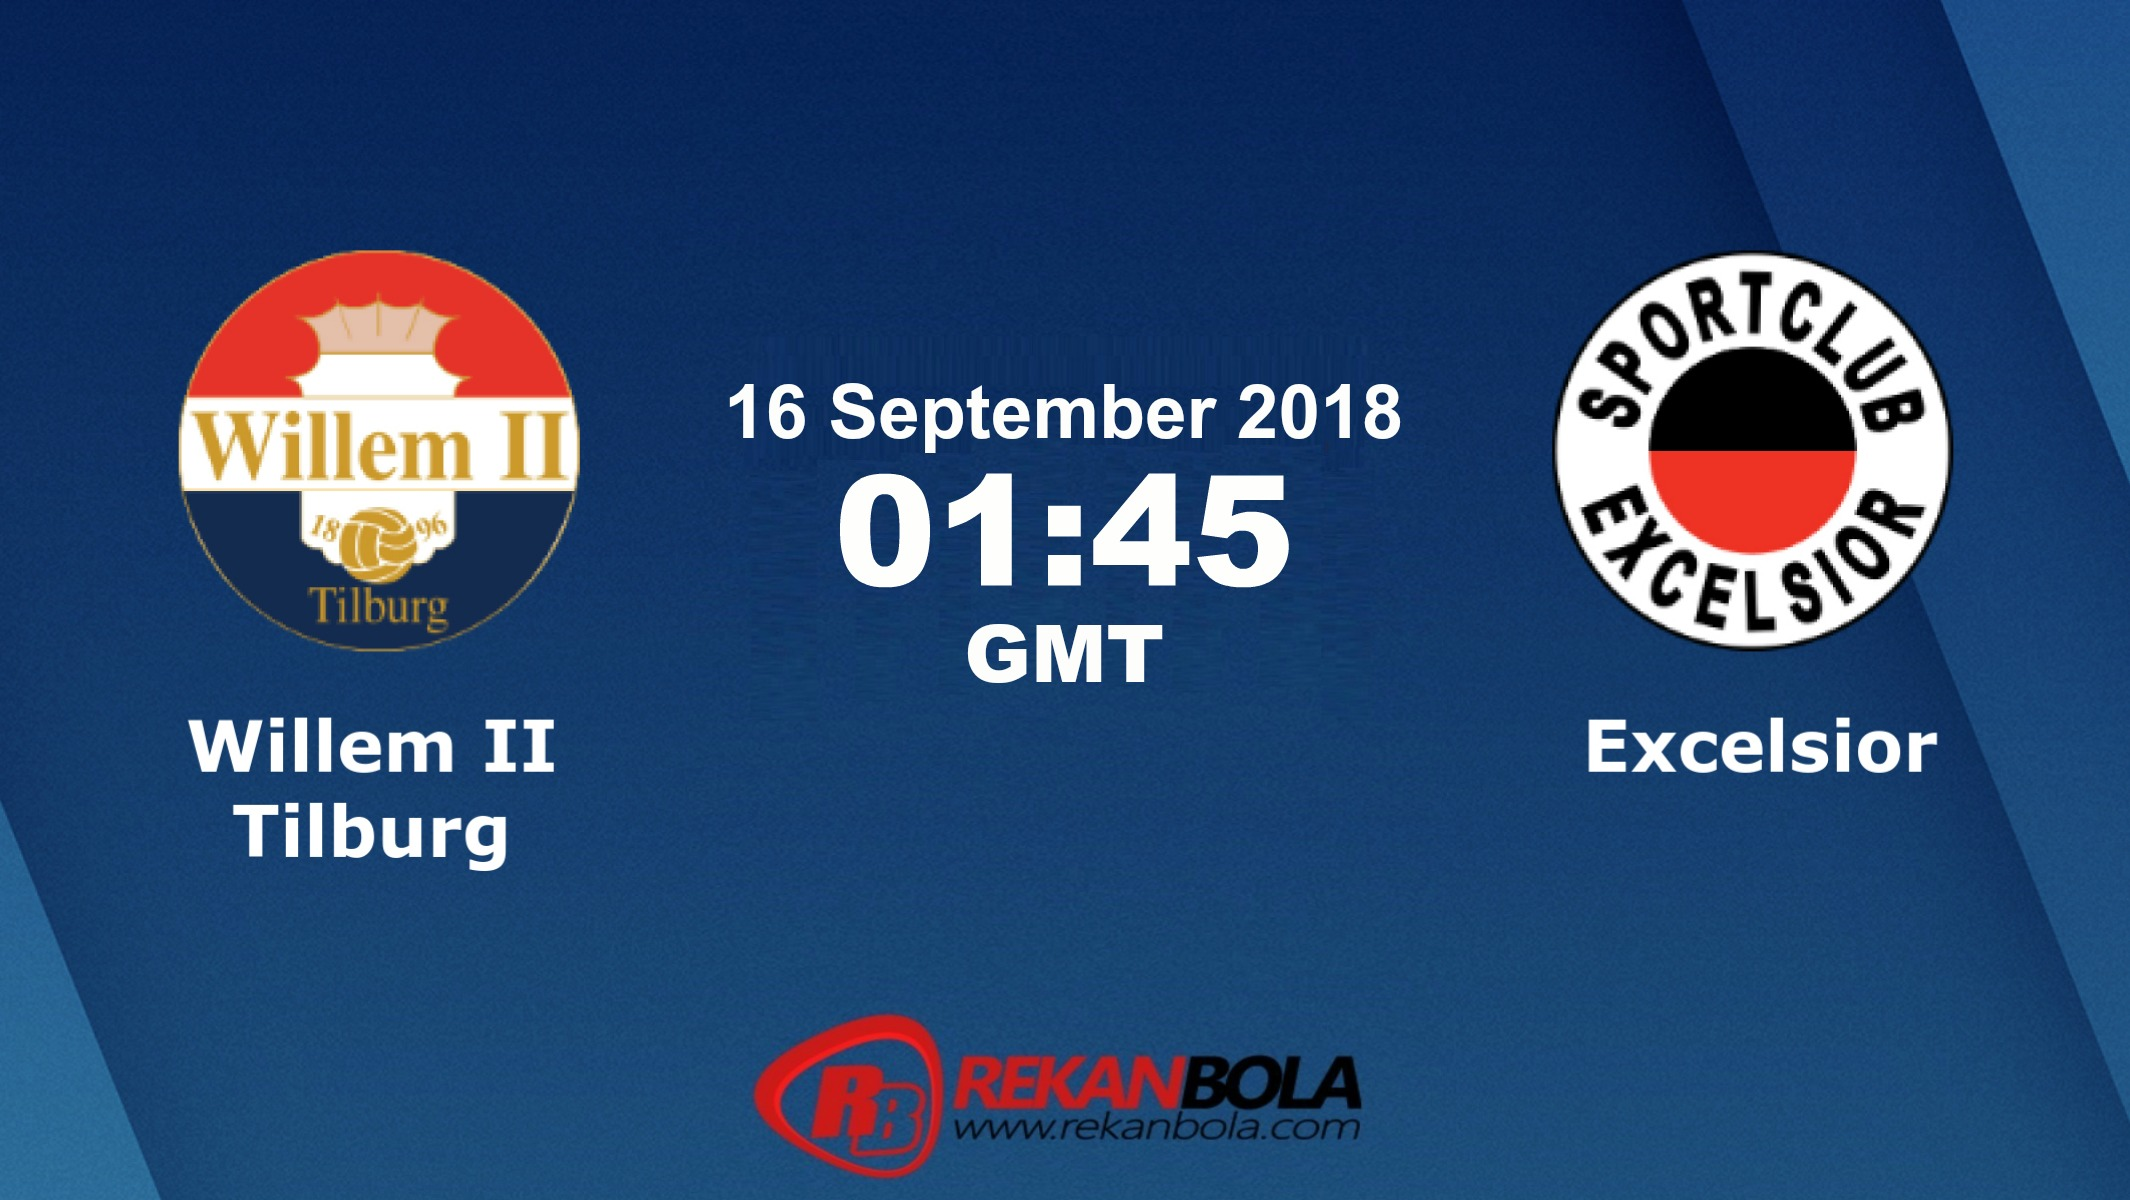 Nonton Siaran Live Streaming Willem II	Vs Excelsior 16 September 2018